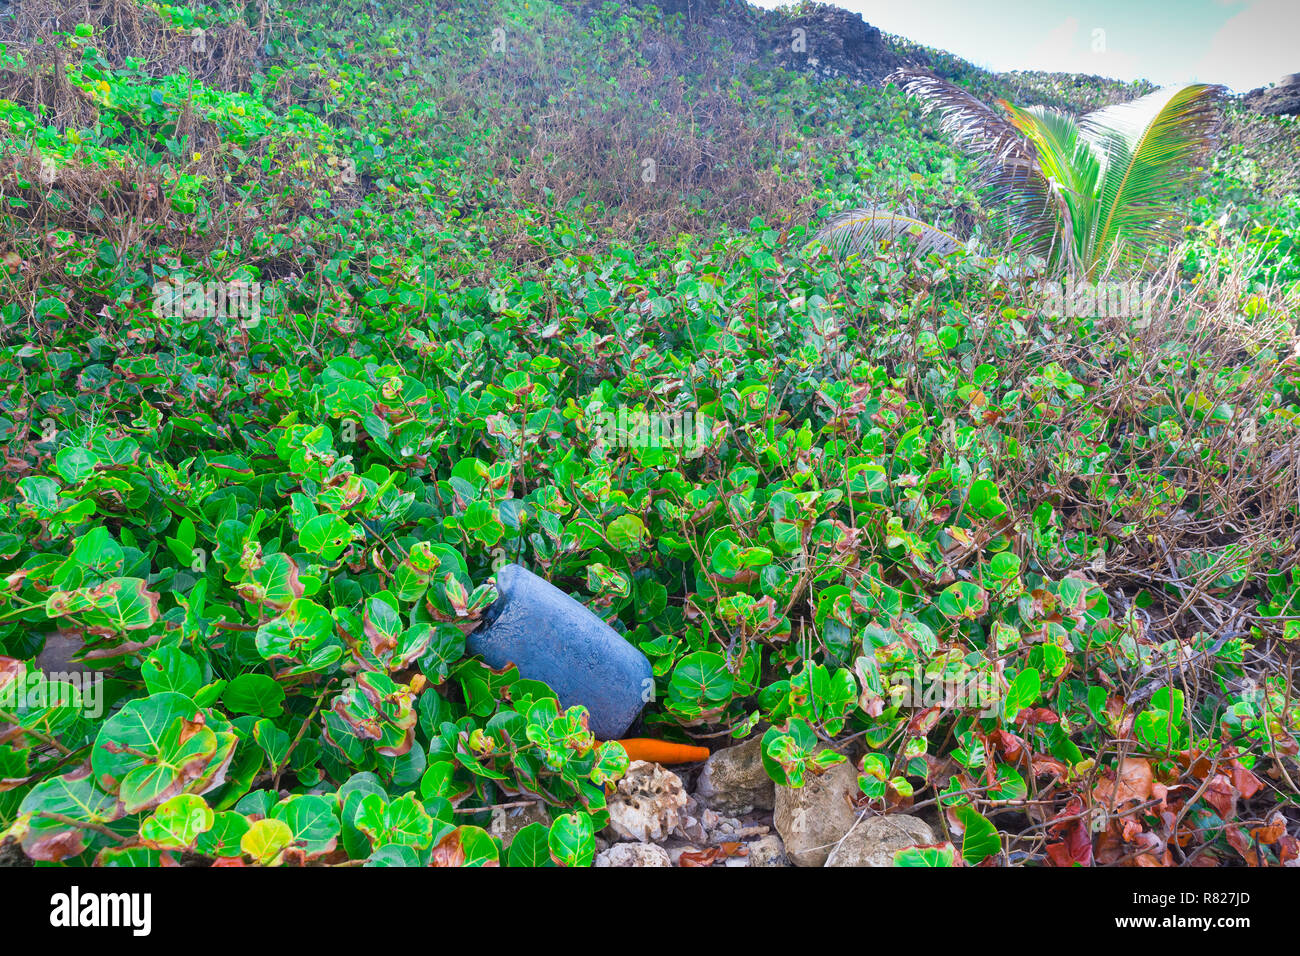 Plastic waste washed in from the sea contaminates shoreline plants and trees in the Caribbean - Stock Image